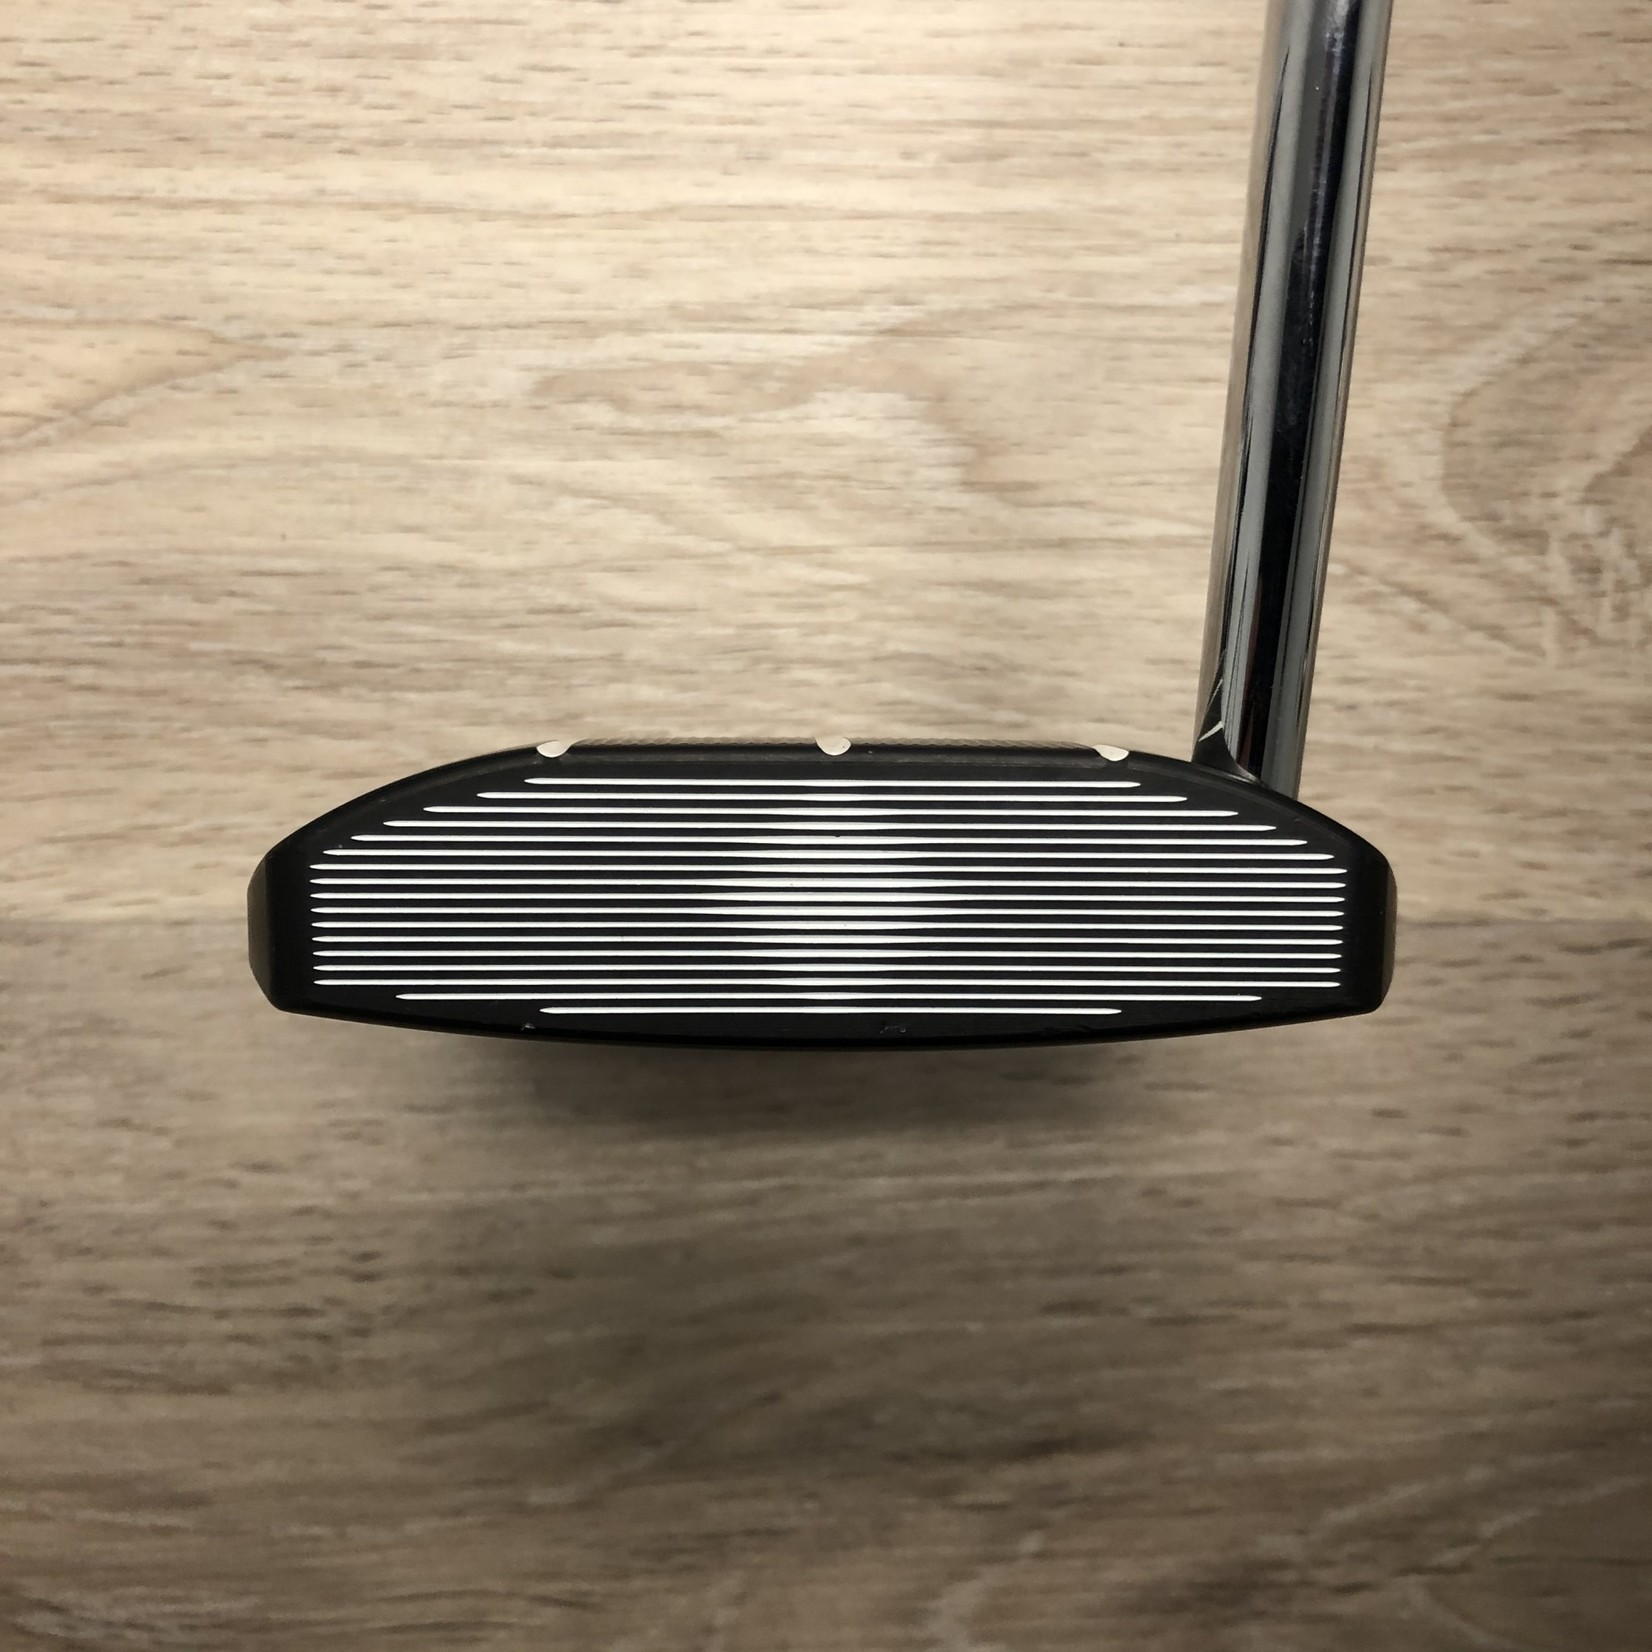 PING PING Ketsch Cadence TR Putter 35 Inches (RH)